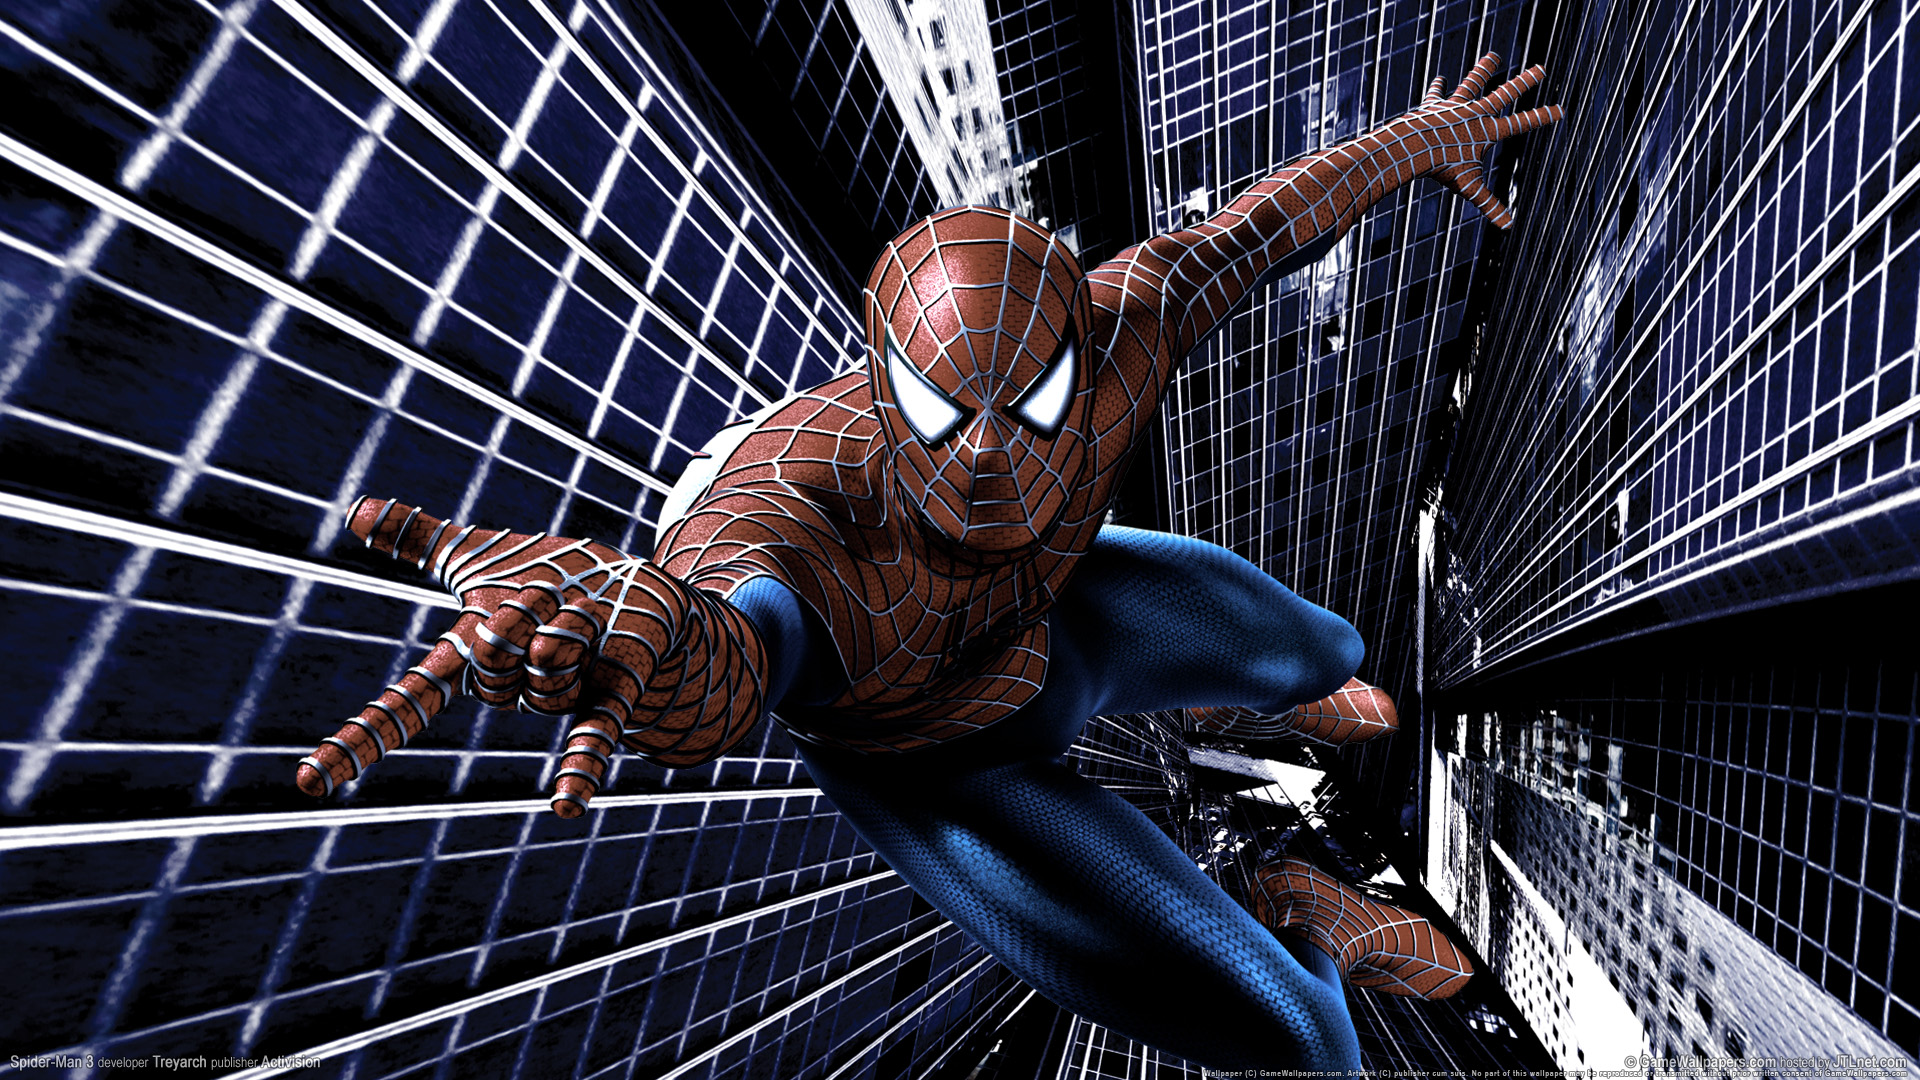 [46+] Spiderman Wallpaper 1080p on WallpaperSafari